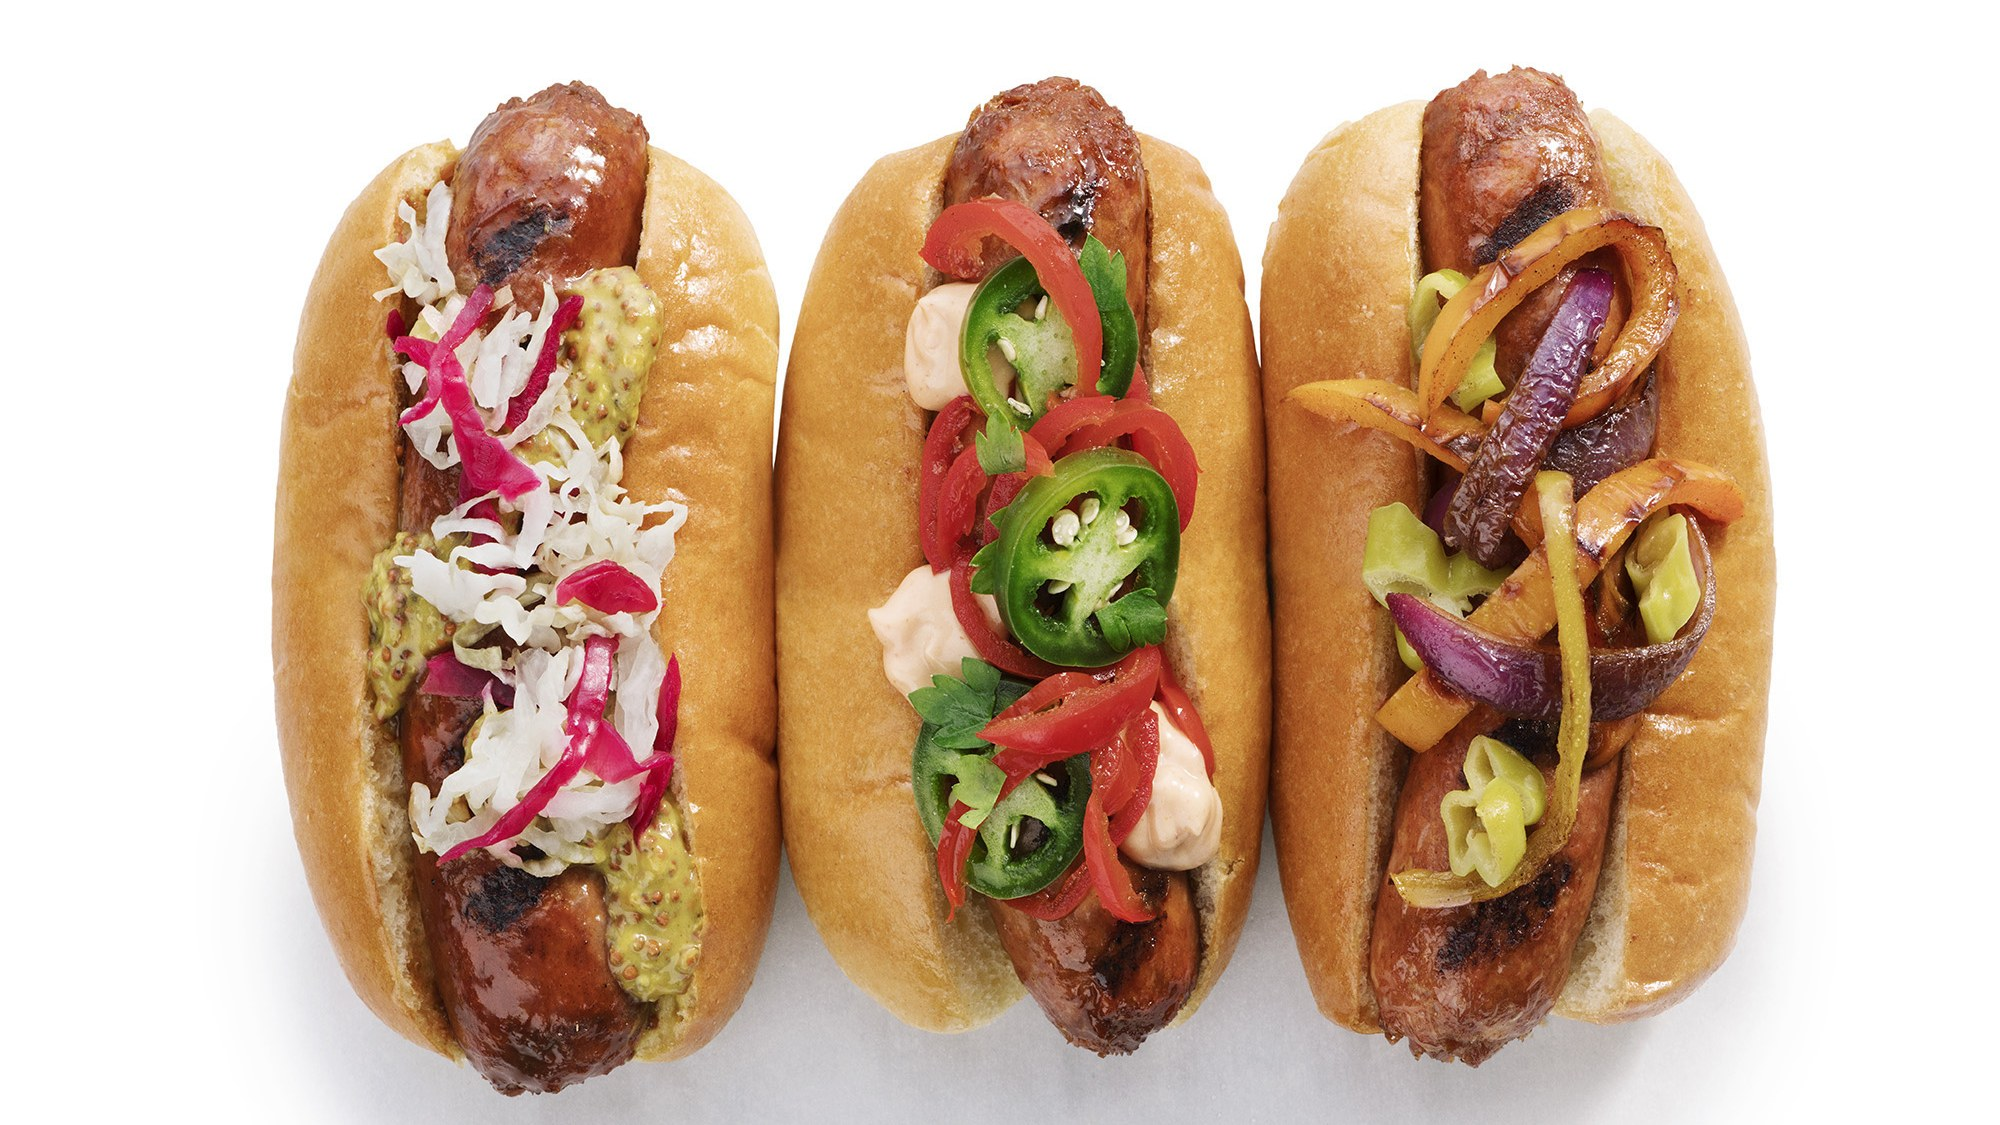 Beyond Meat are launching a new plant-based sausage